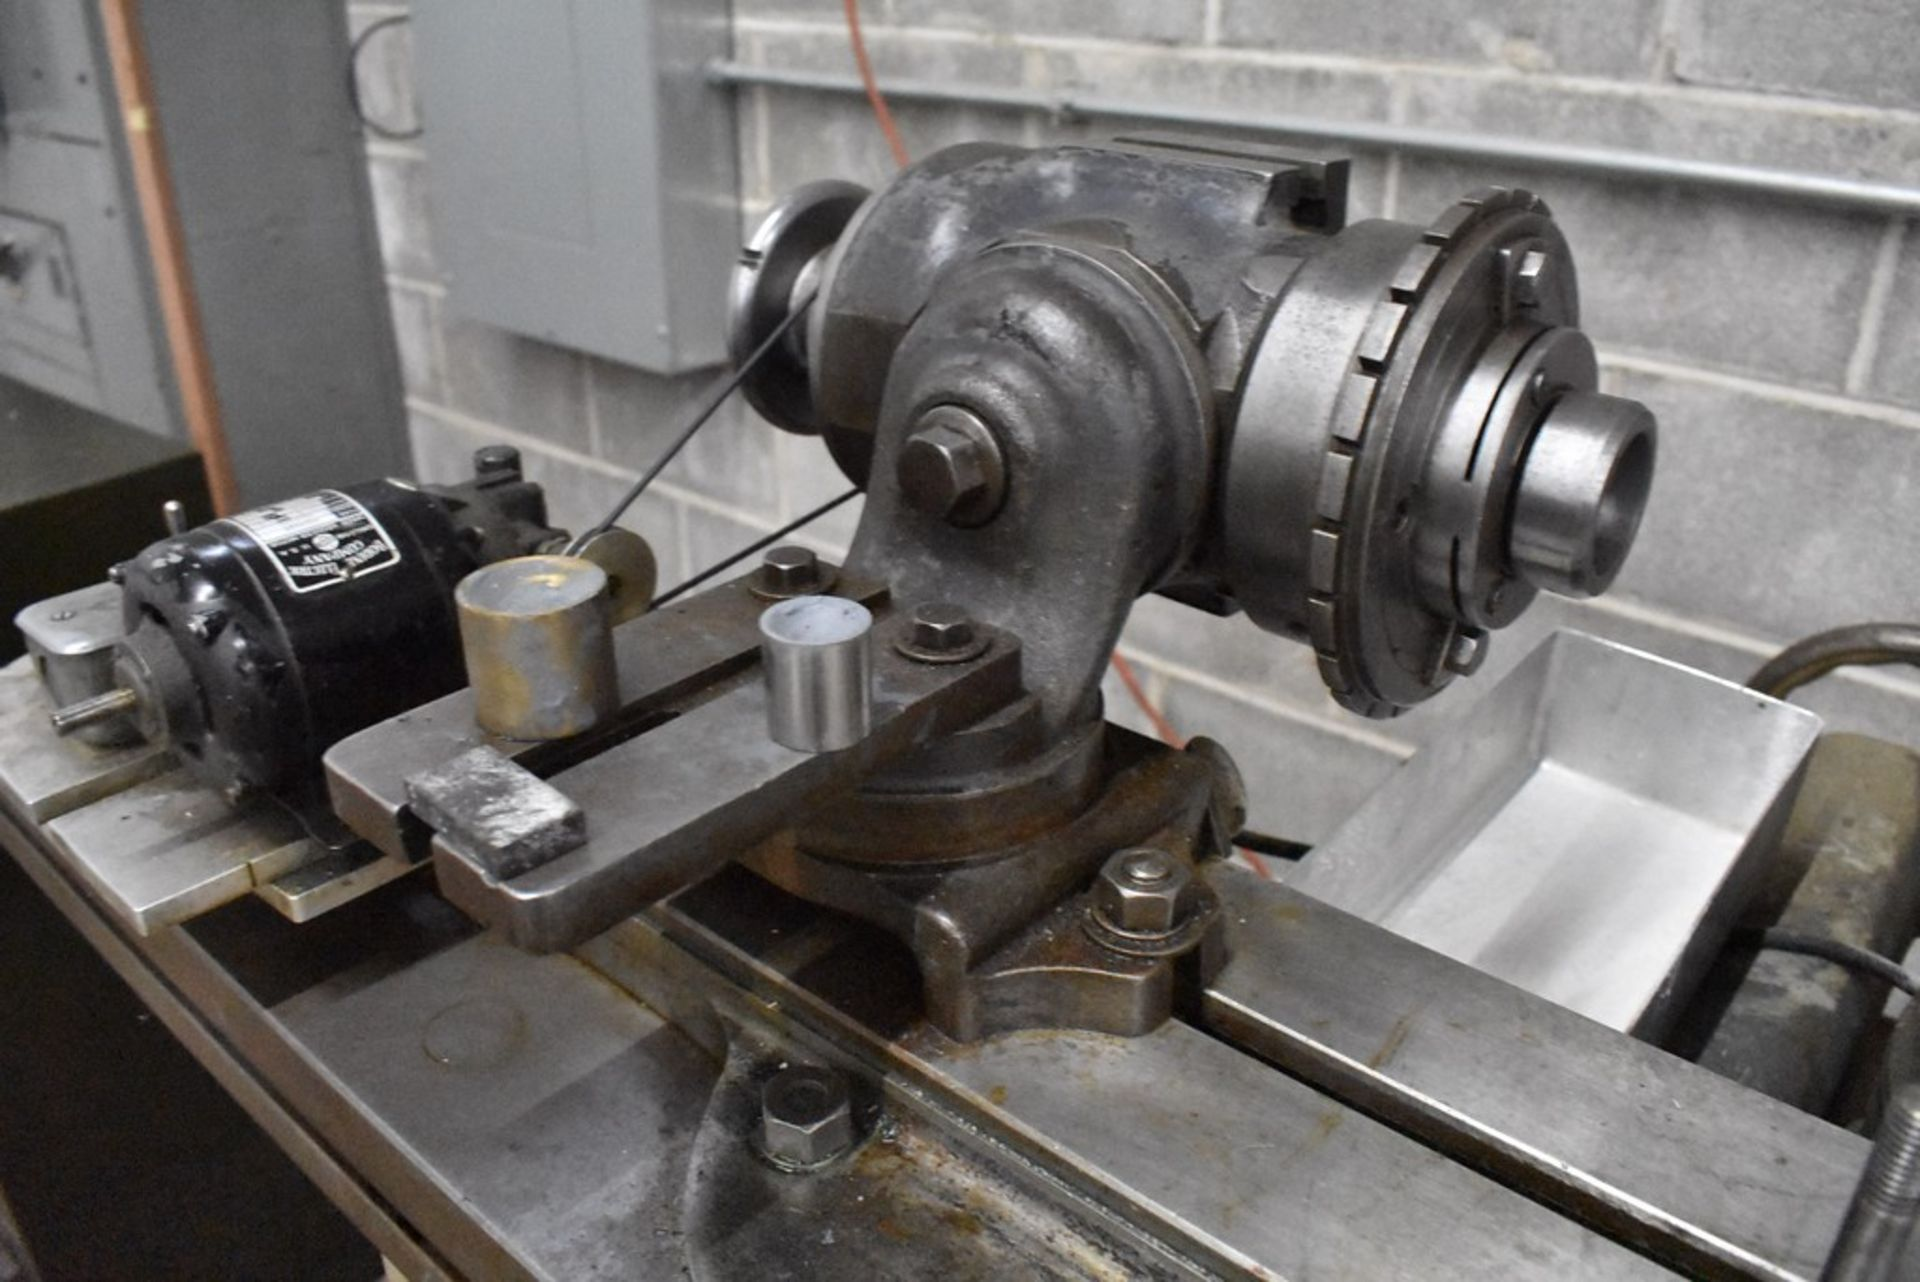 CINCINNATI NO. 2 TOOL AND CUTTER GRINDER, S/N 1D2T1Z-771, WITH MOTORIZED WORK HEAD - Image 9 of 14